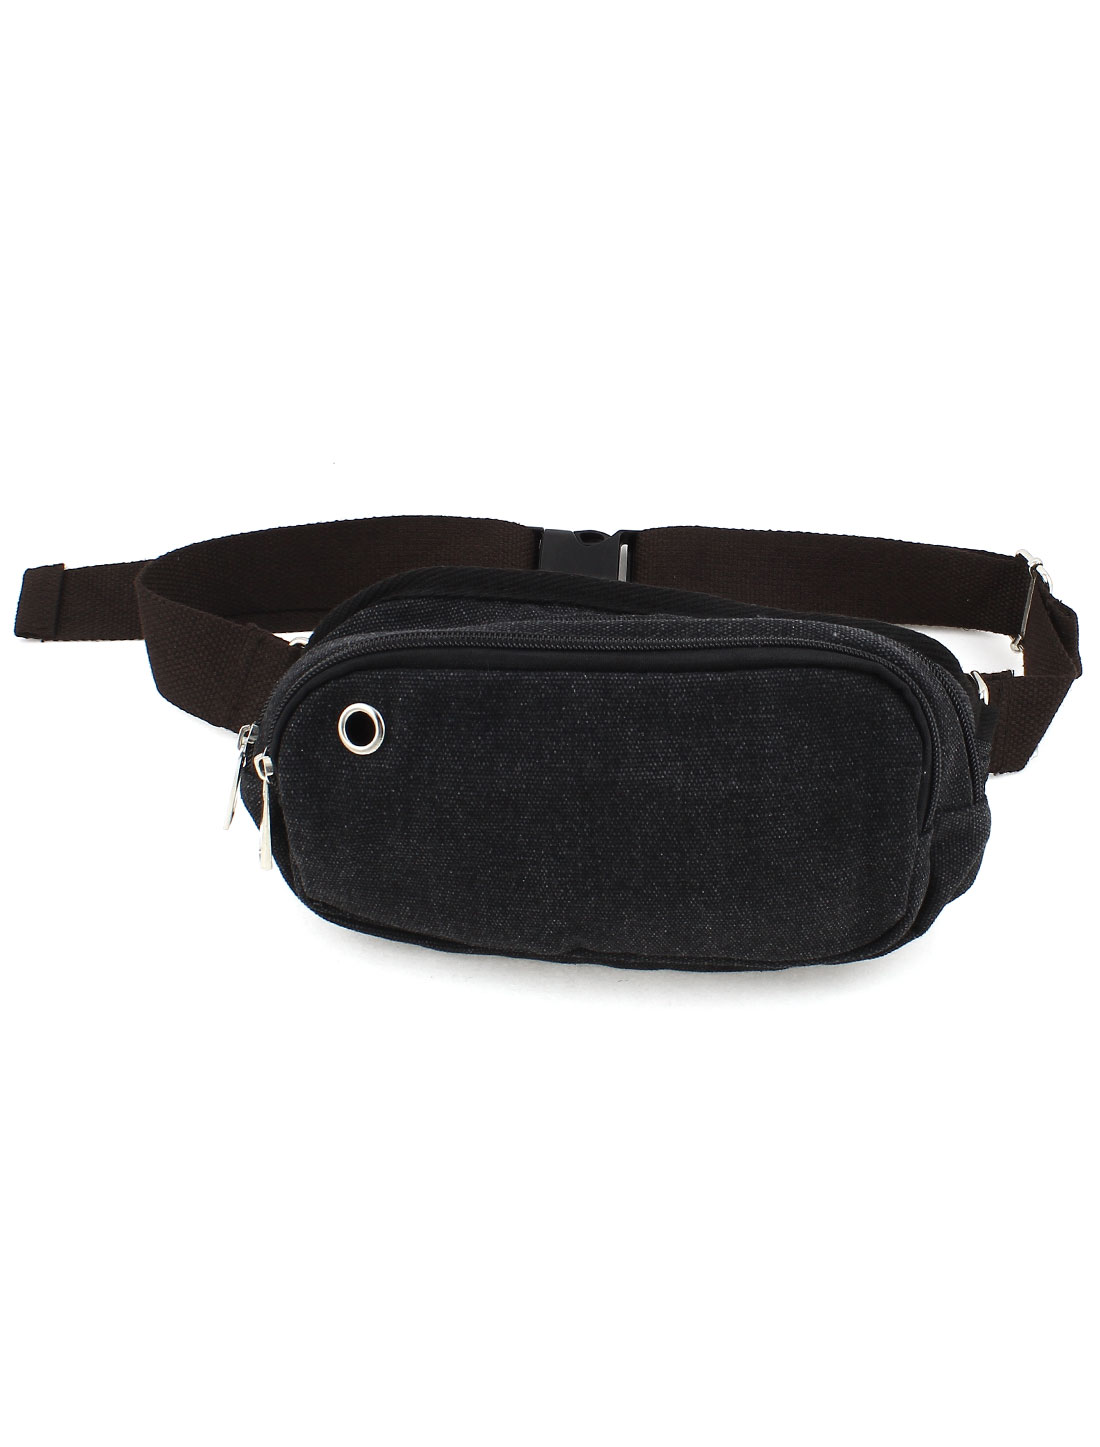 Mens Black Canvas Ajustable Strap 2 Zip Closure Bag Casual Waist Pack